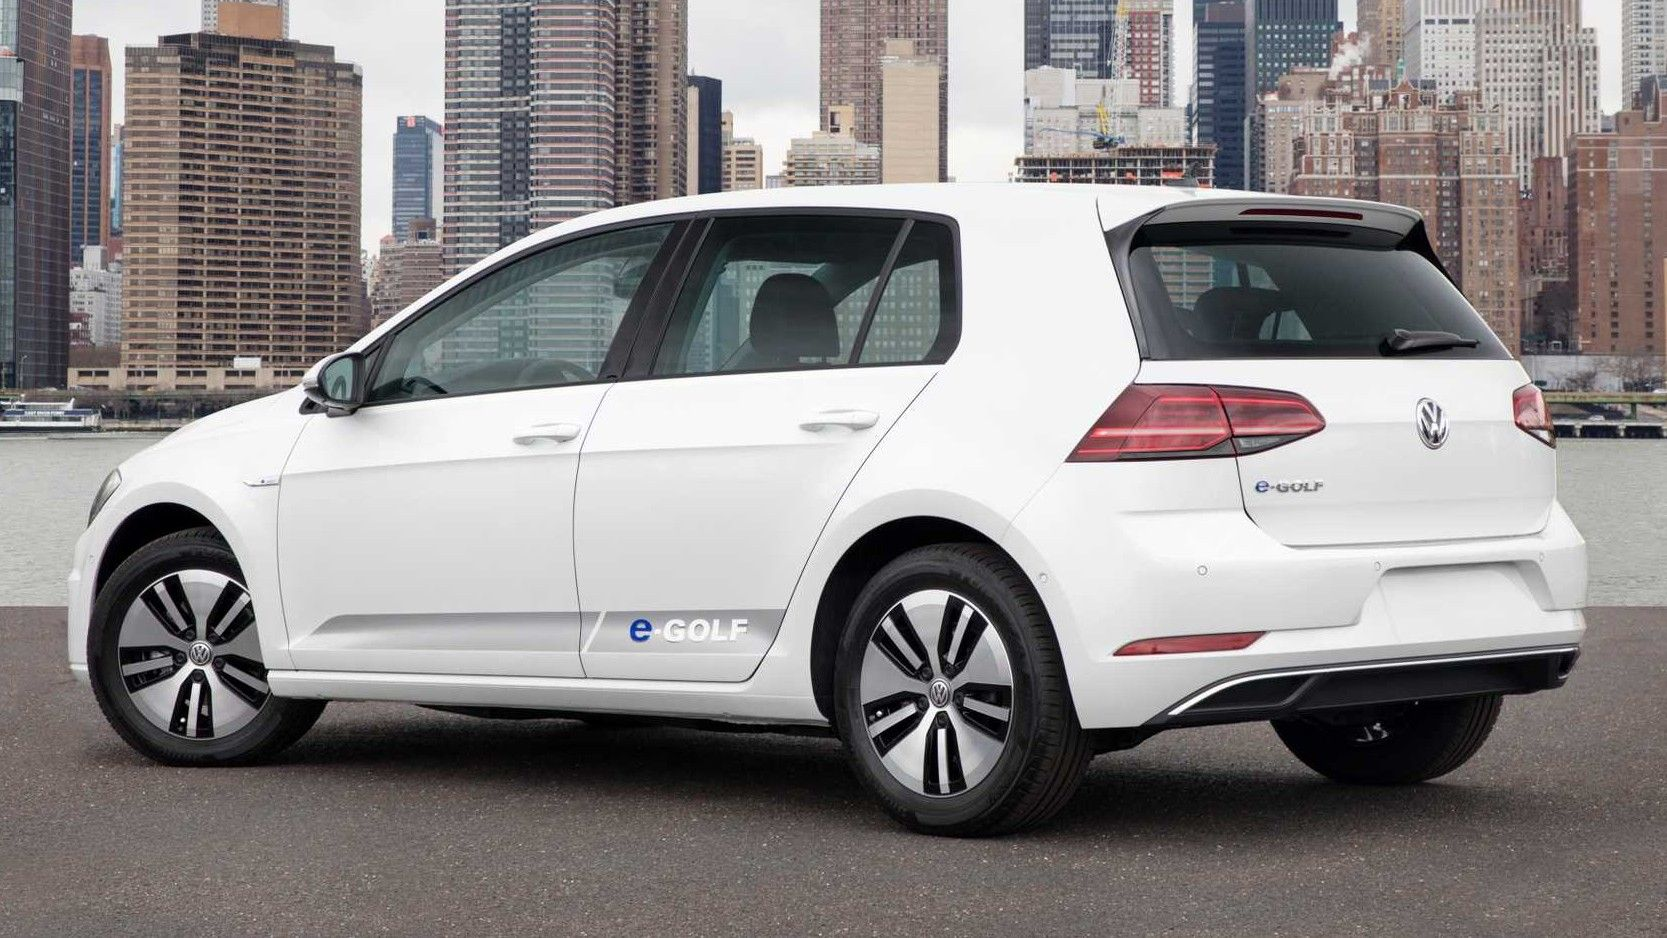 2019 Volkswagen E-Golf Rear Three quarter View